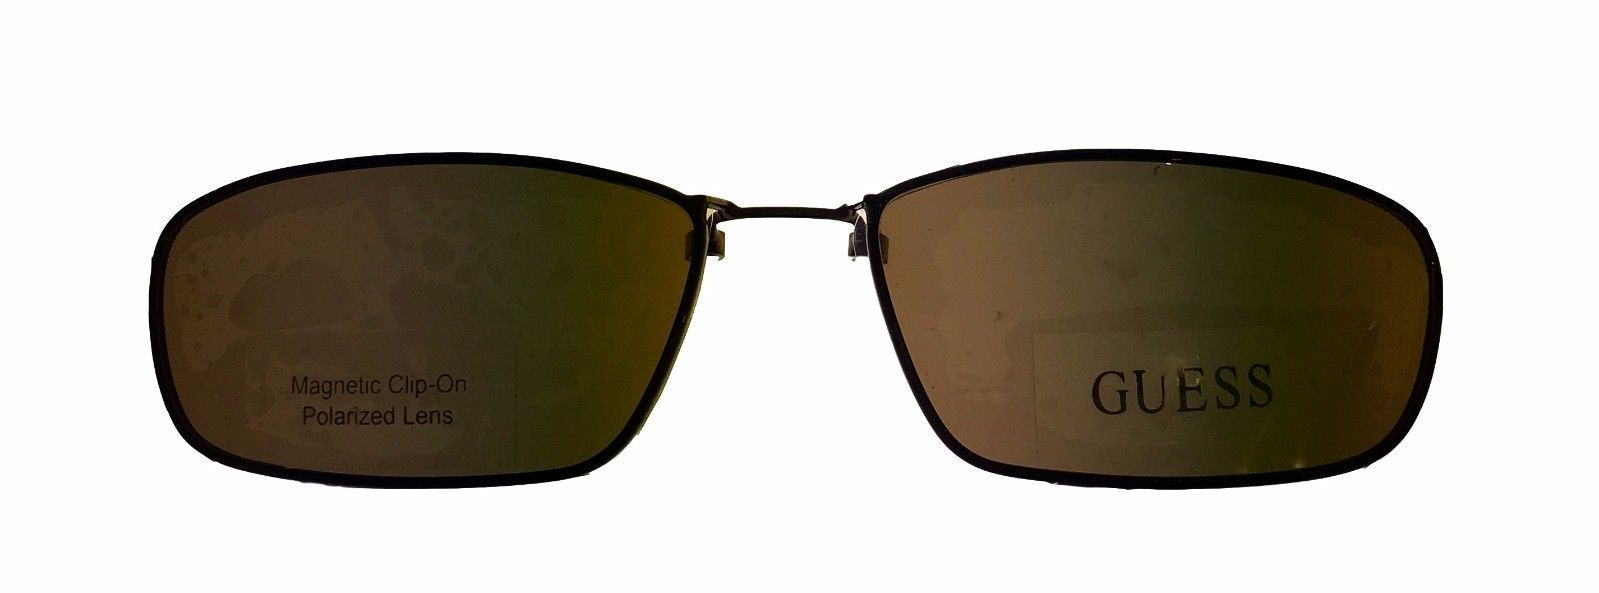 Guess Ophthalmic Mens Eyeglass Plastic Rectangle 1331 Demi Amber image 5